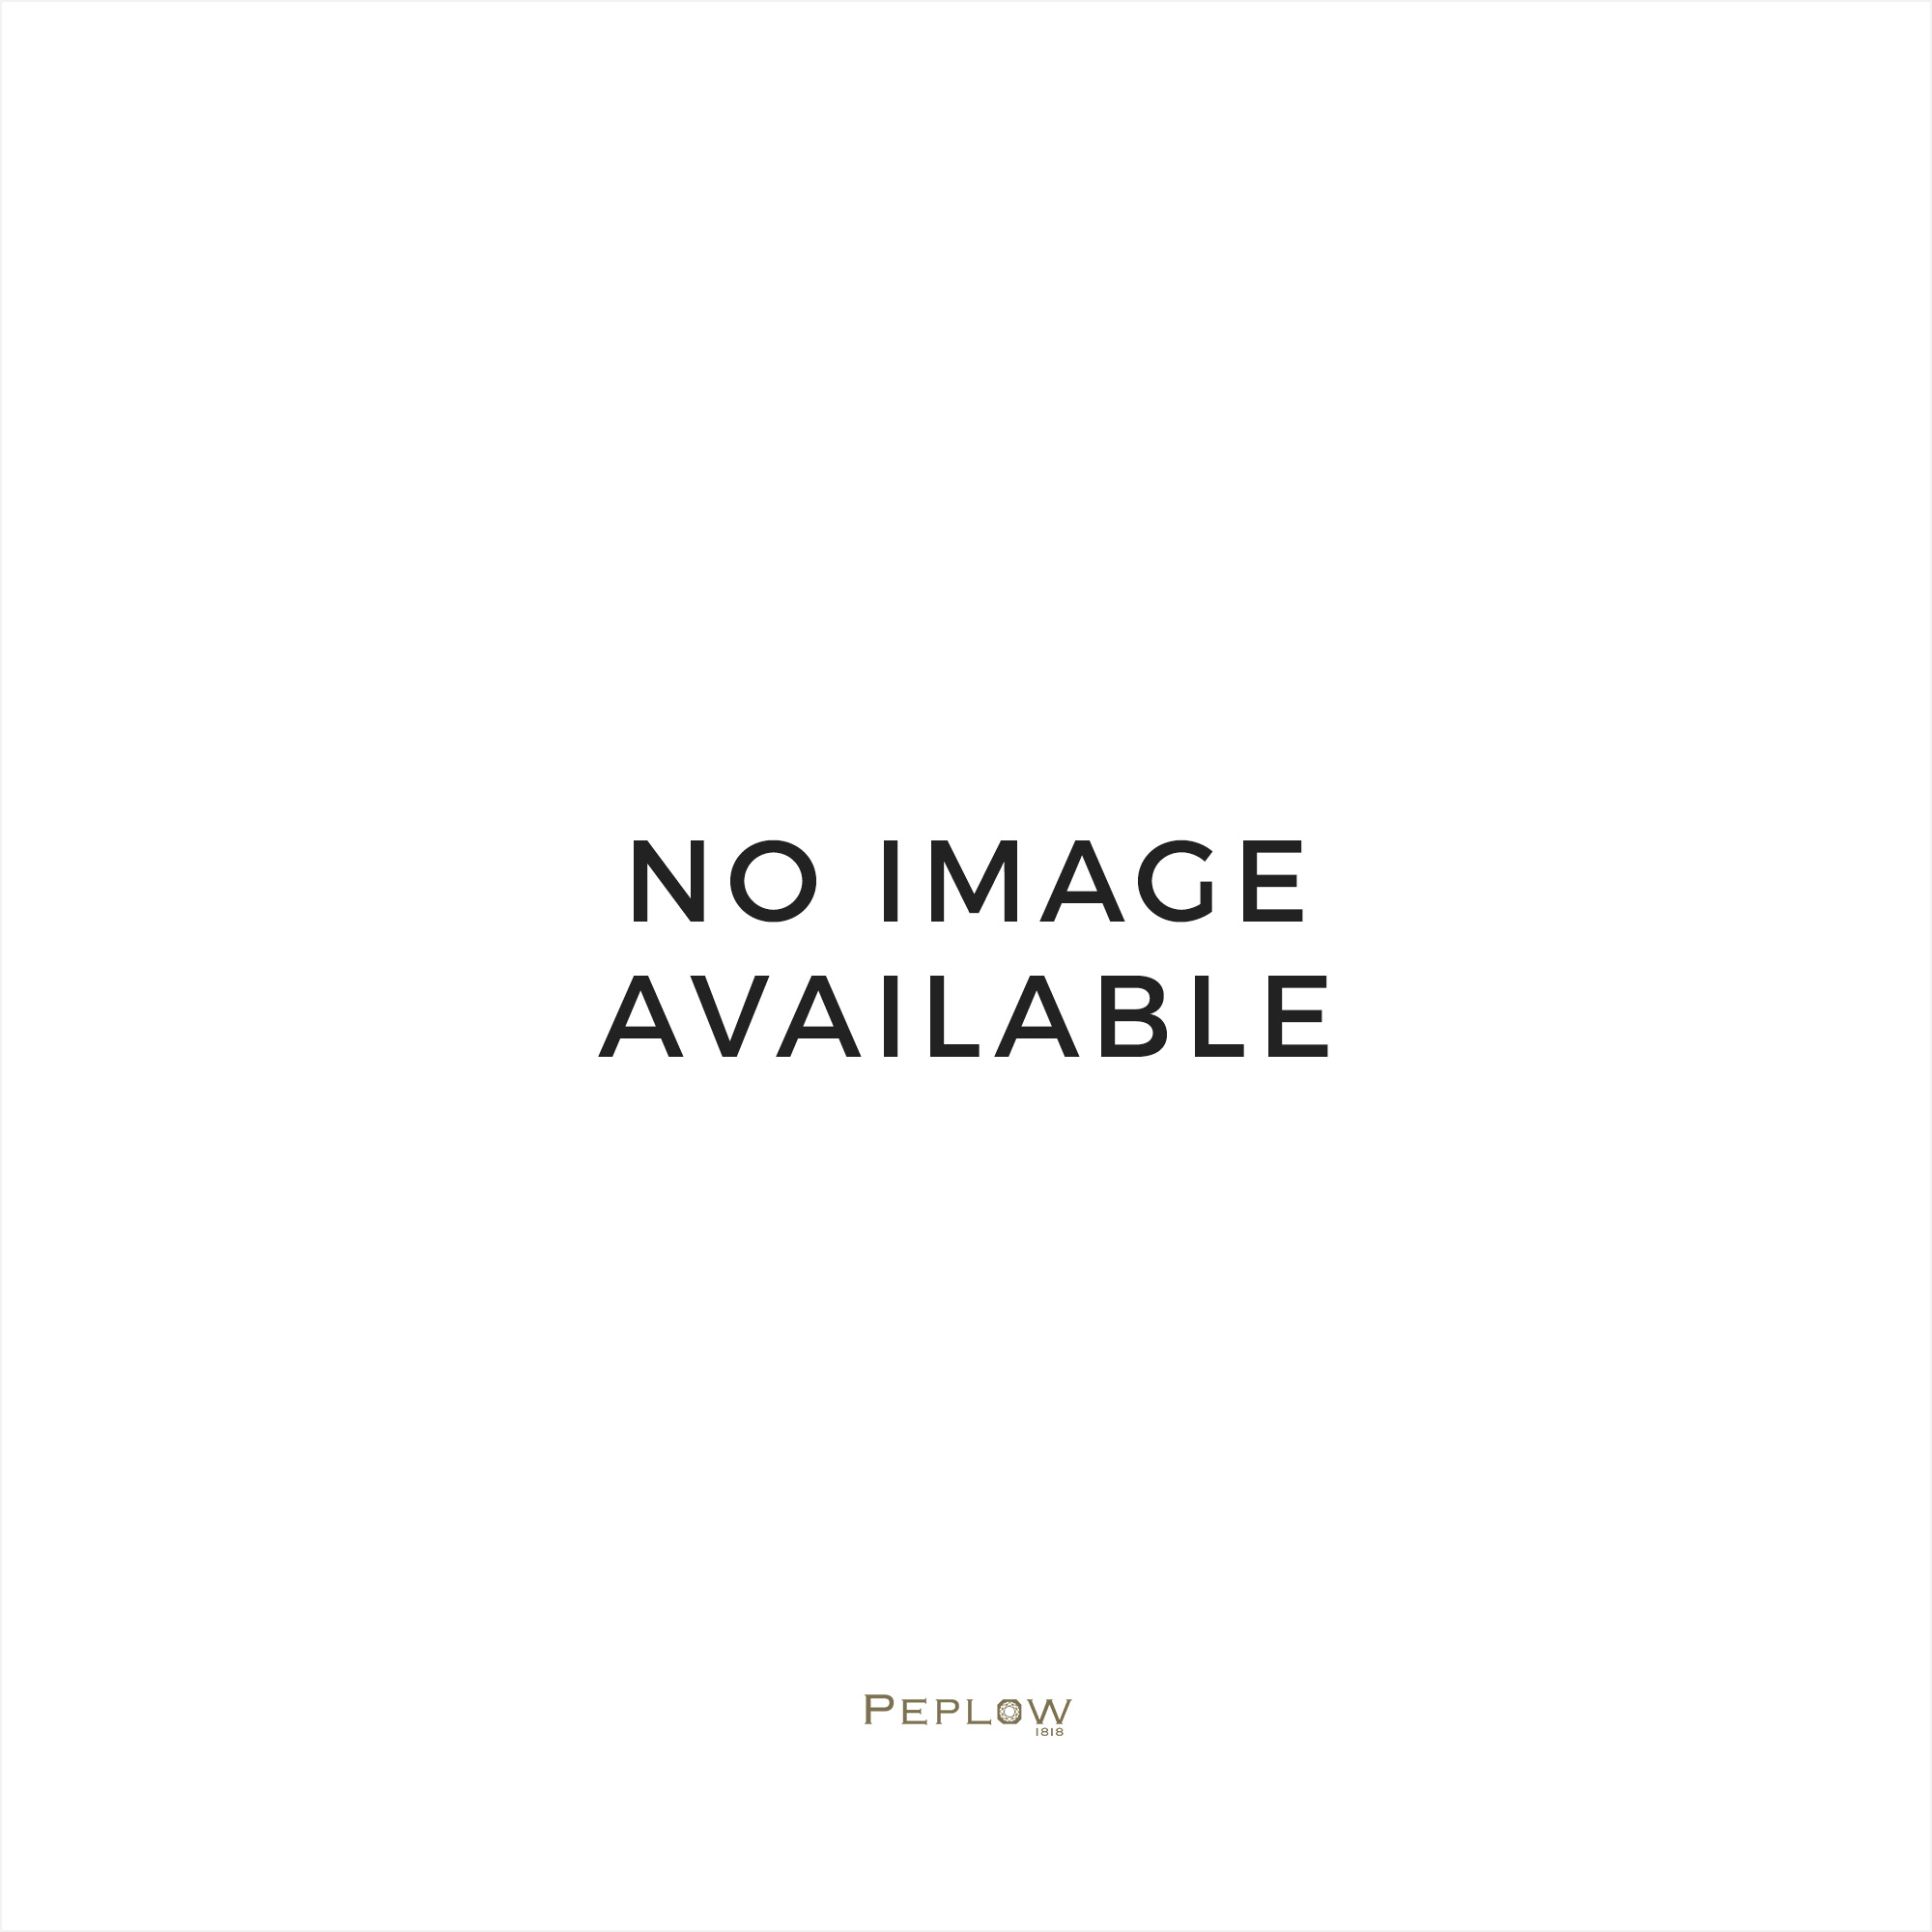 Facetted Blue Goldstone charm, TGLBE-30054